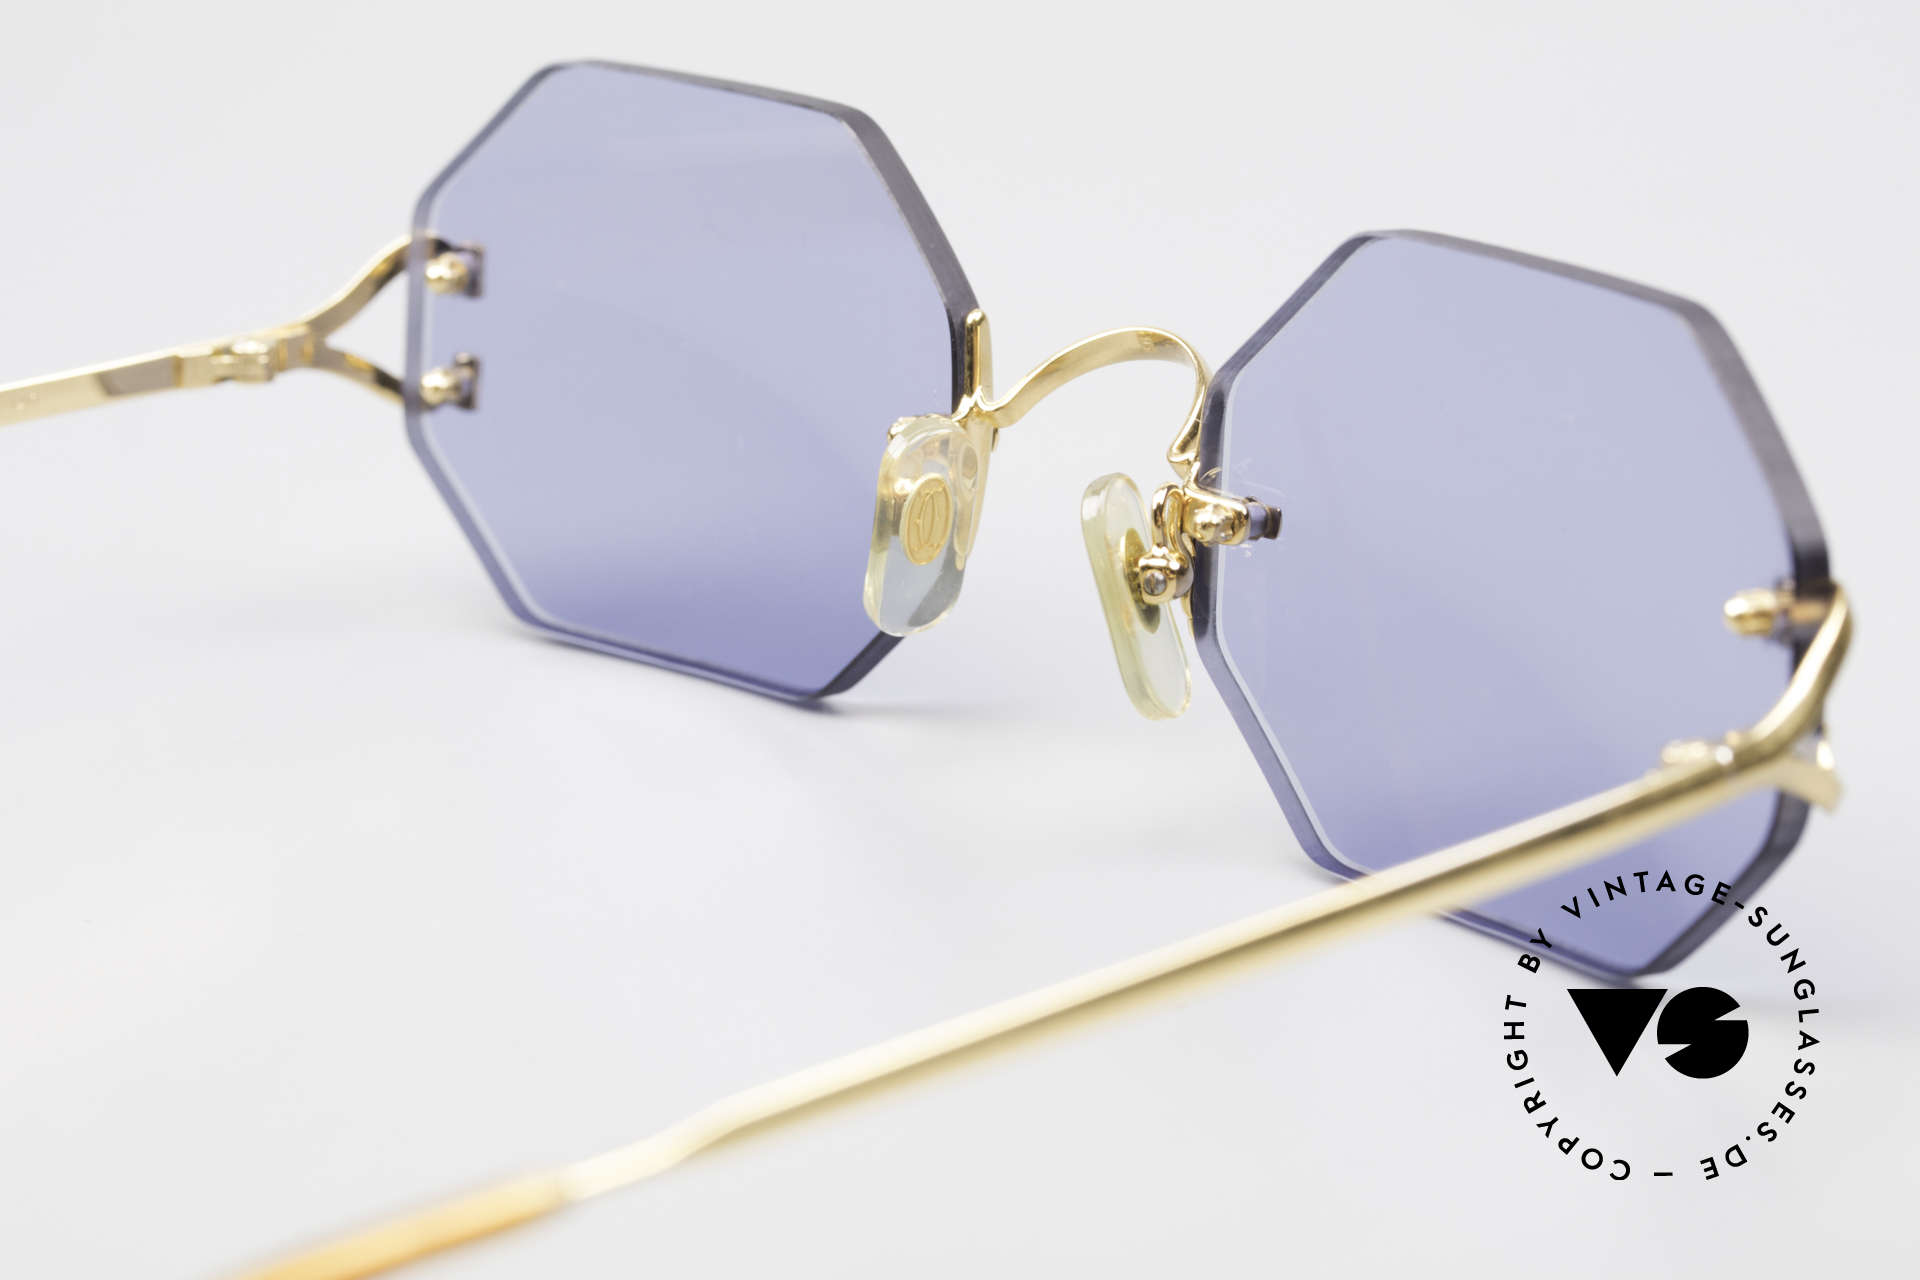 Cartier Rimless Octag Octag Shades One of a Kind, with new CR39 UV400 lenses in solid blue; 100% UV, Made for Men and Women